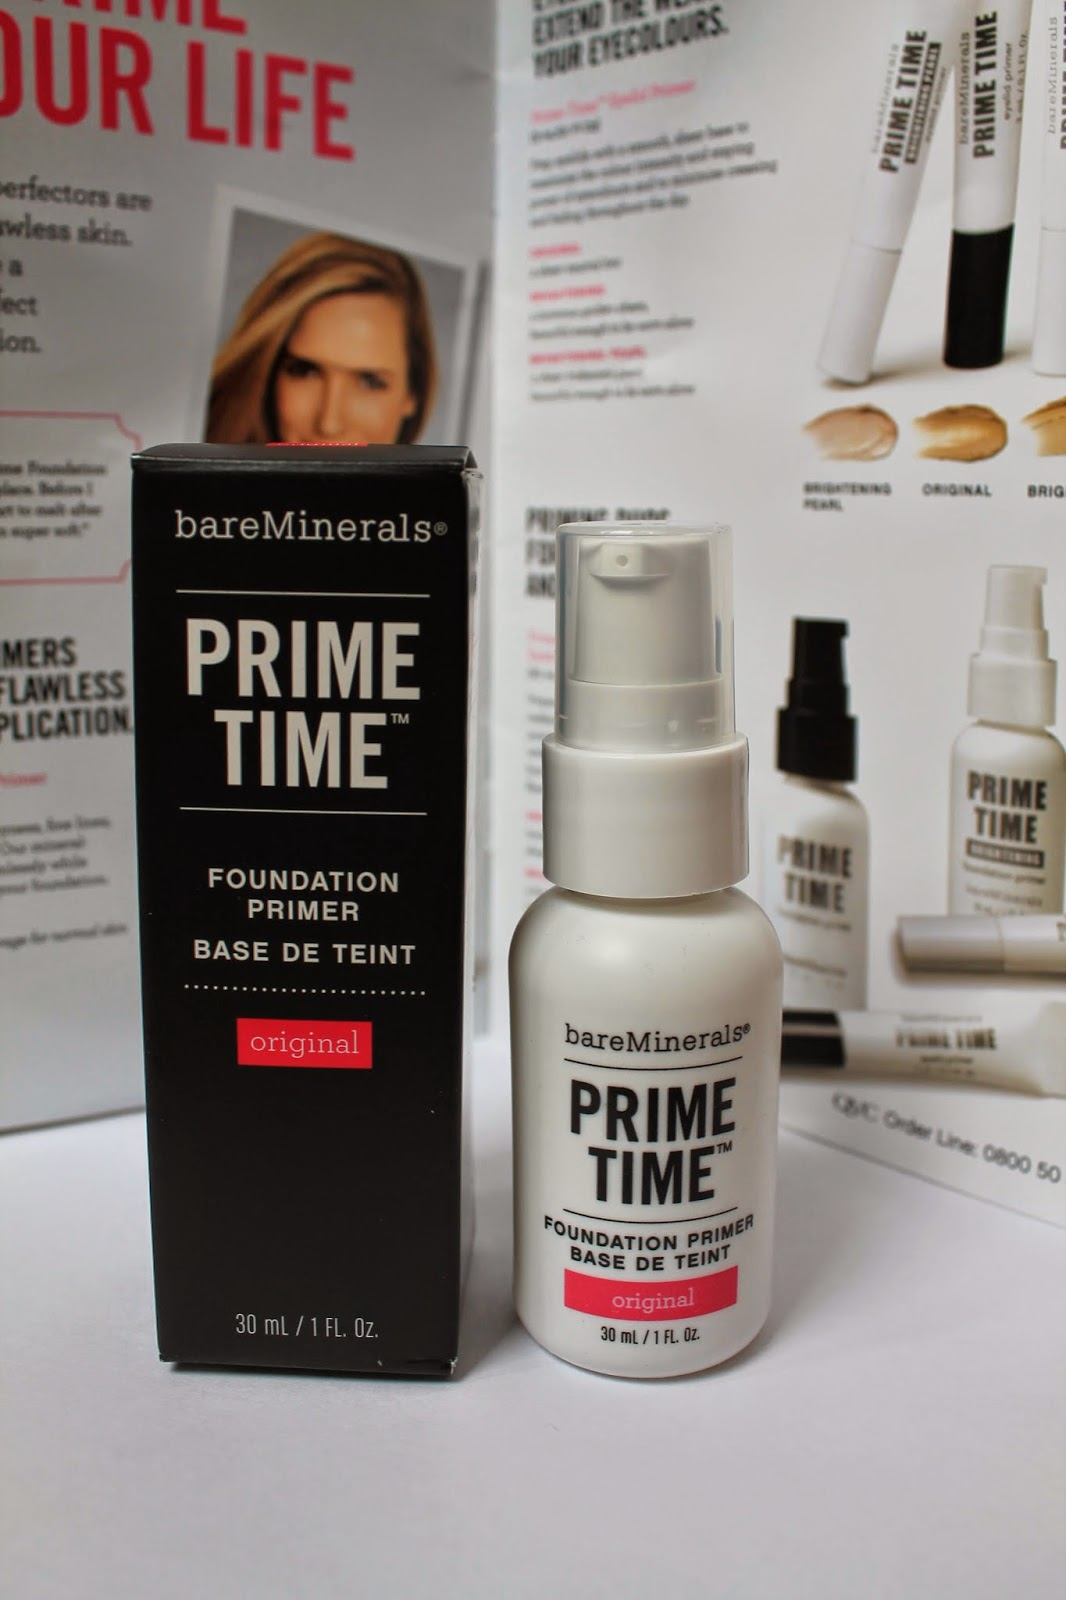 bareMinerals Prime Time review